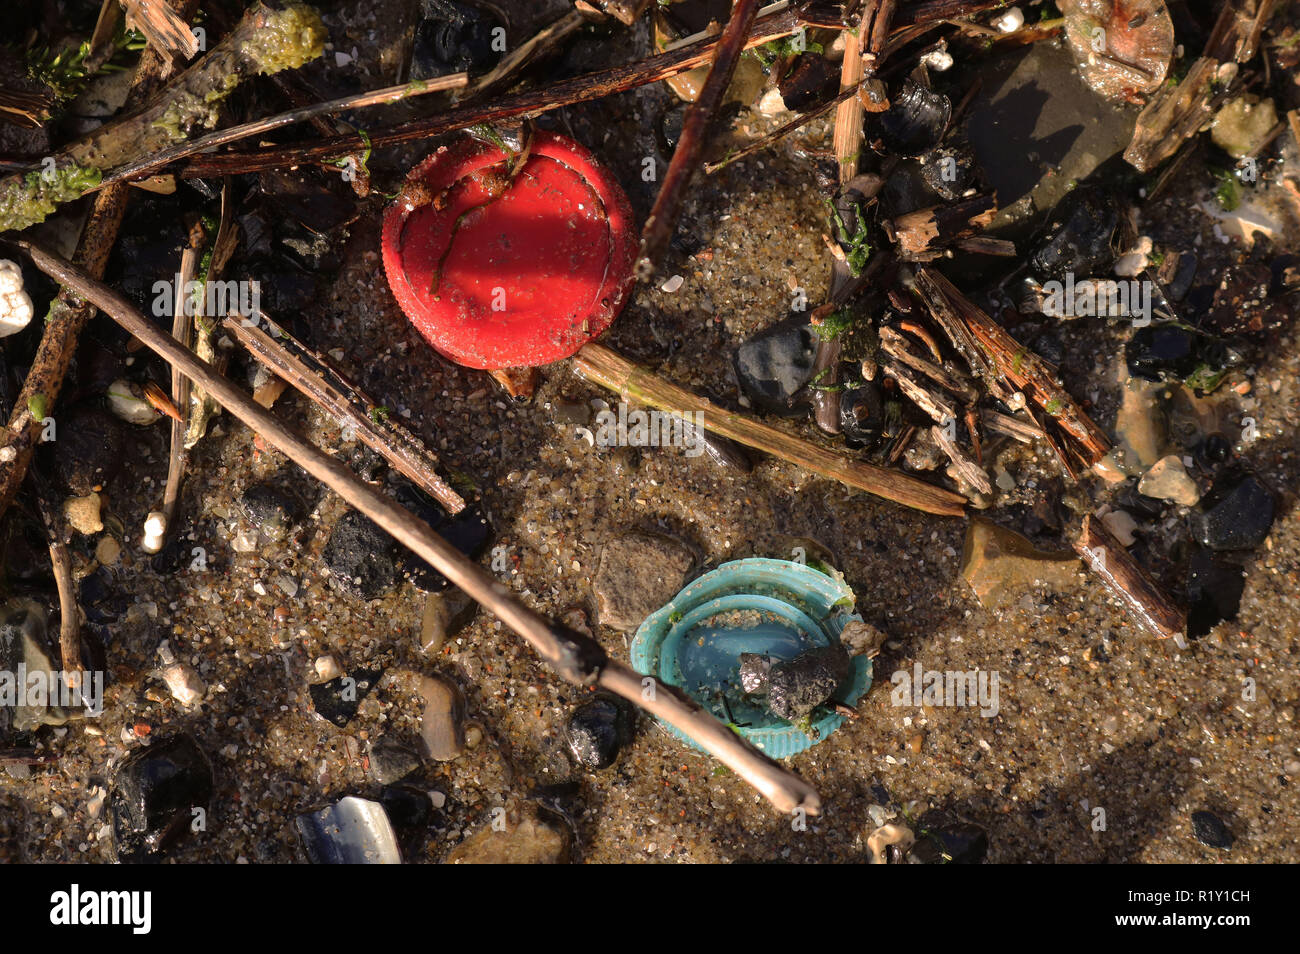 Plastic Bottle tops found in the River Thames to show the high use of Plastic used in the environment. - Stock Image